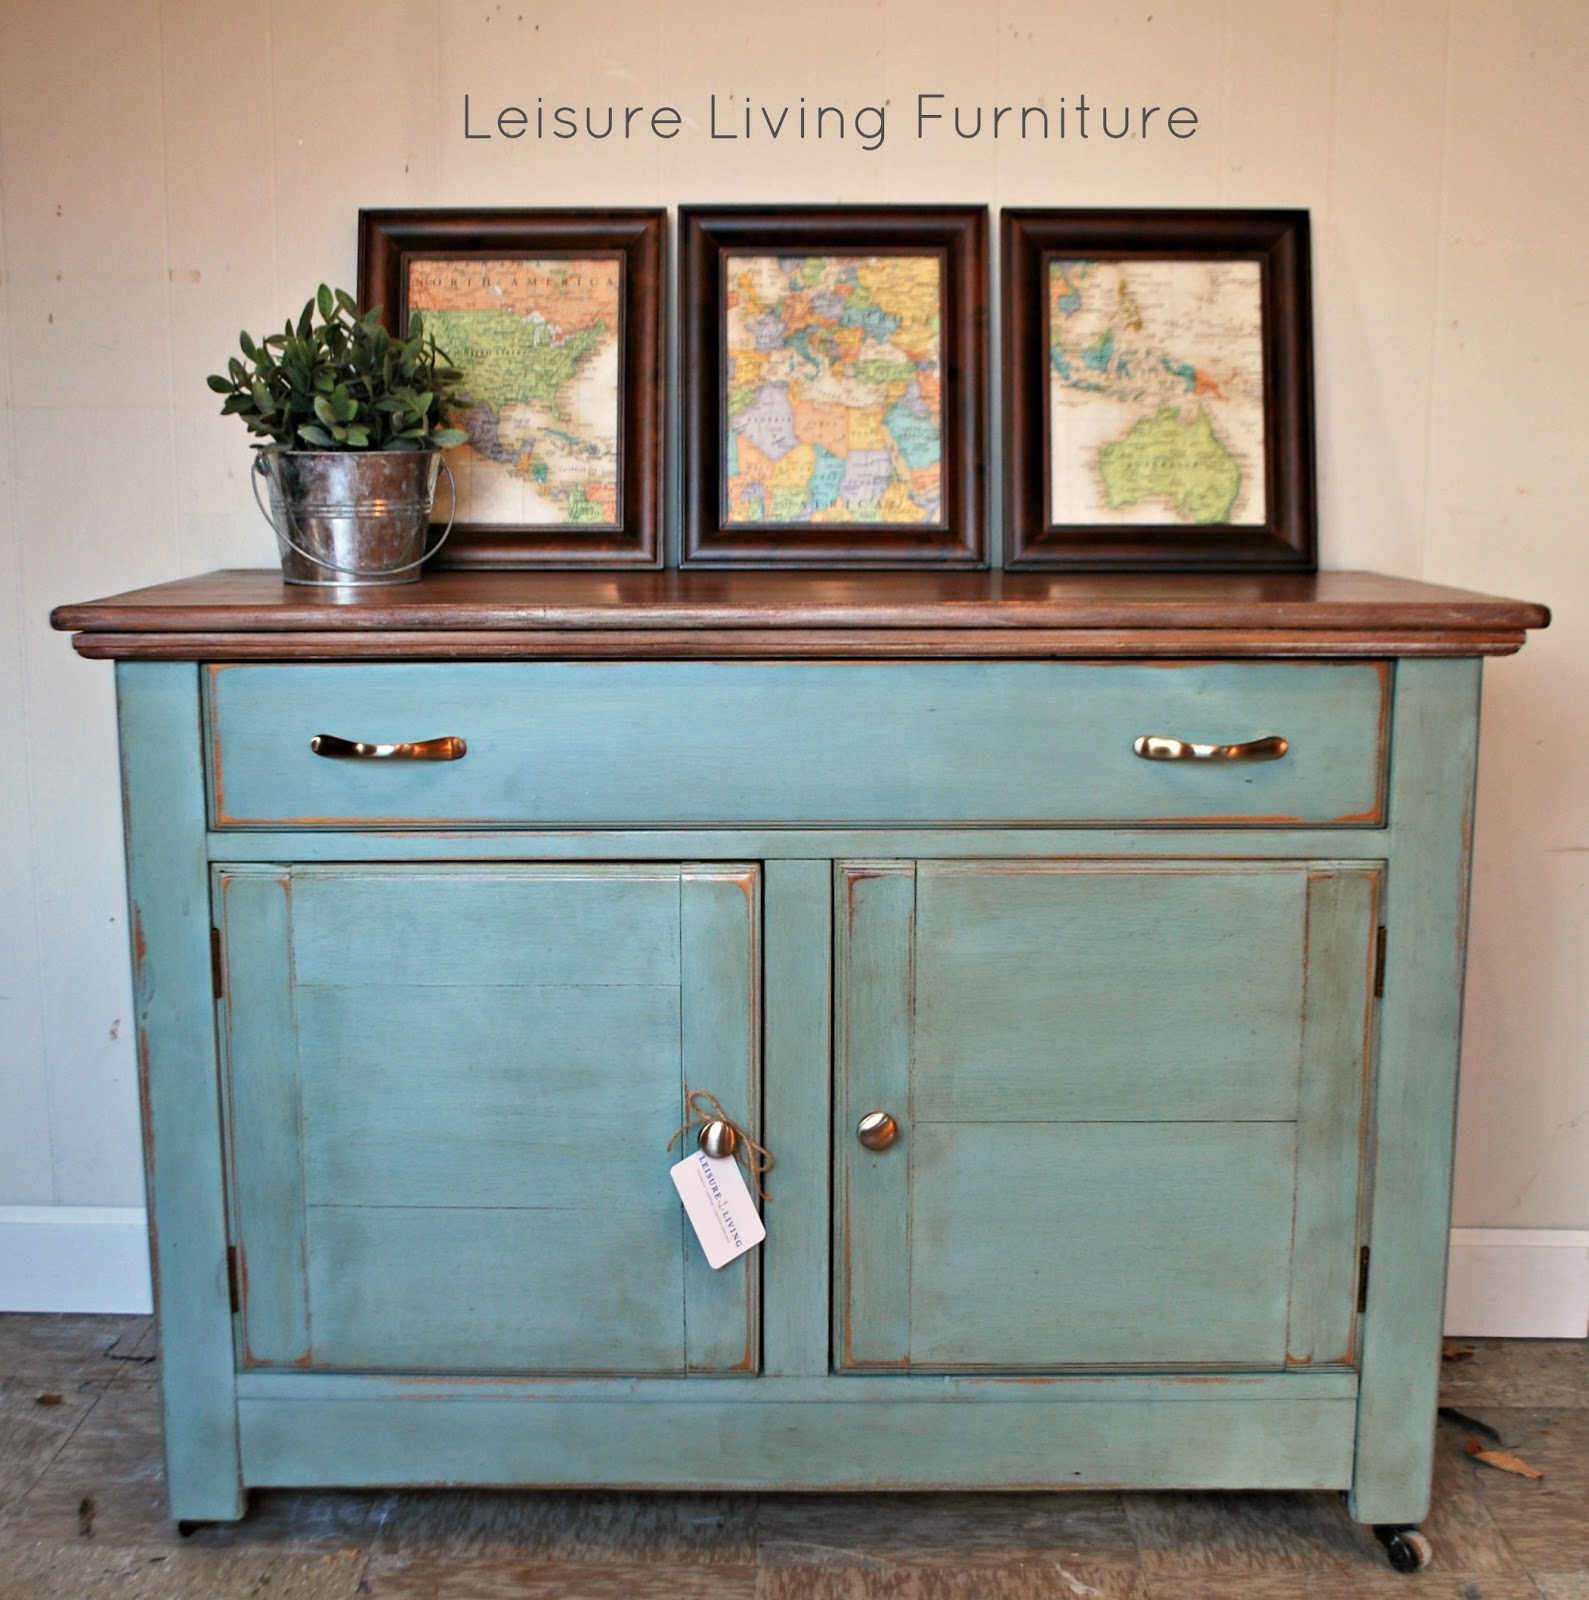 Foyer Cabinets: Leisure Living: Entryway Cabinet